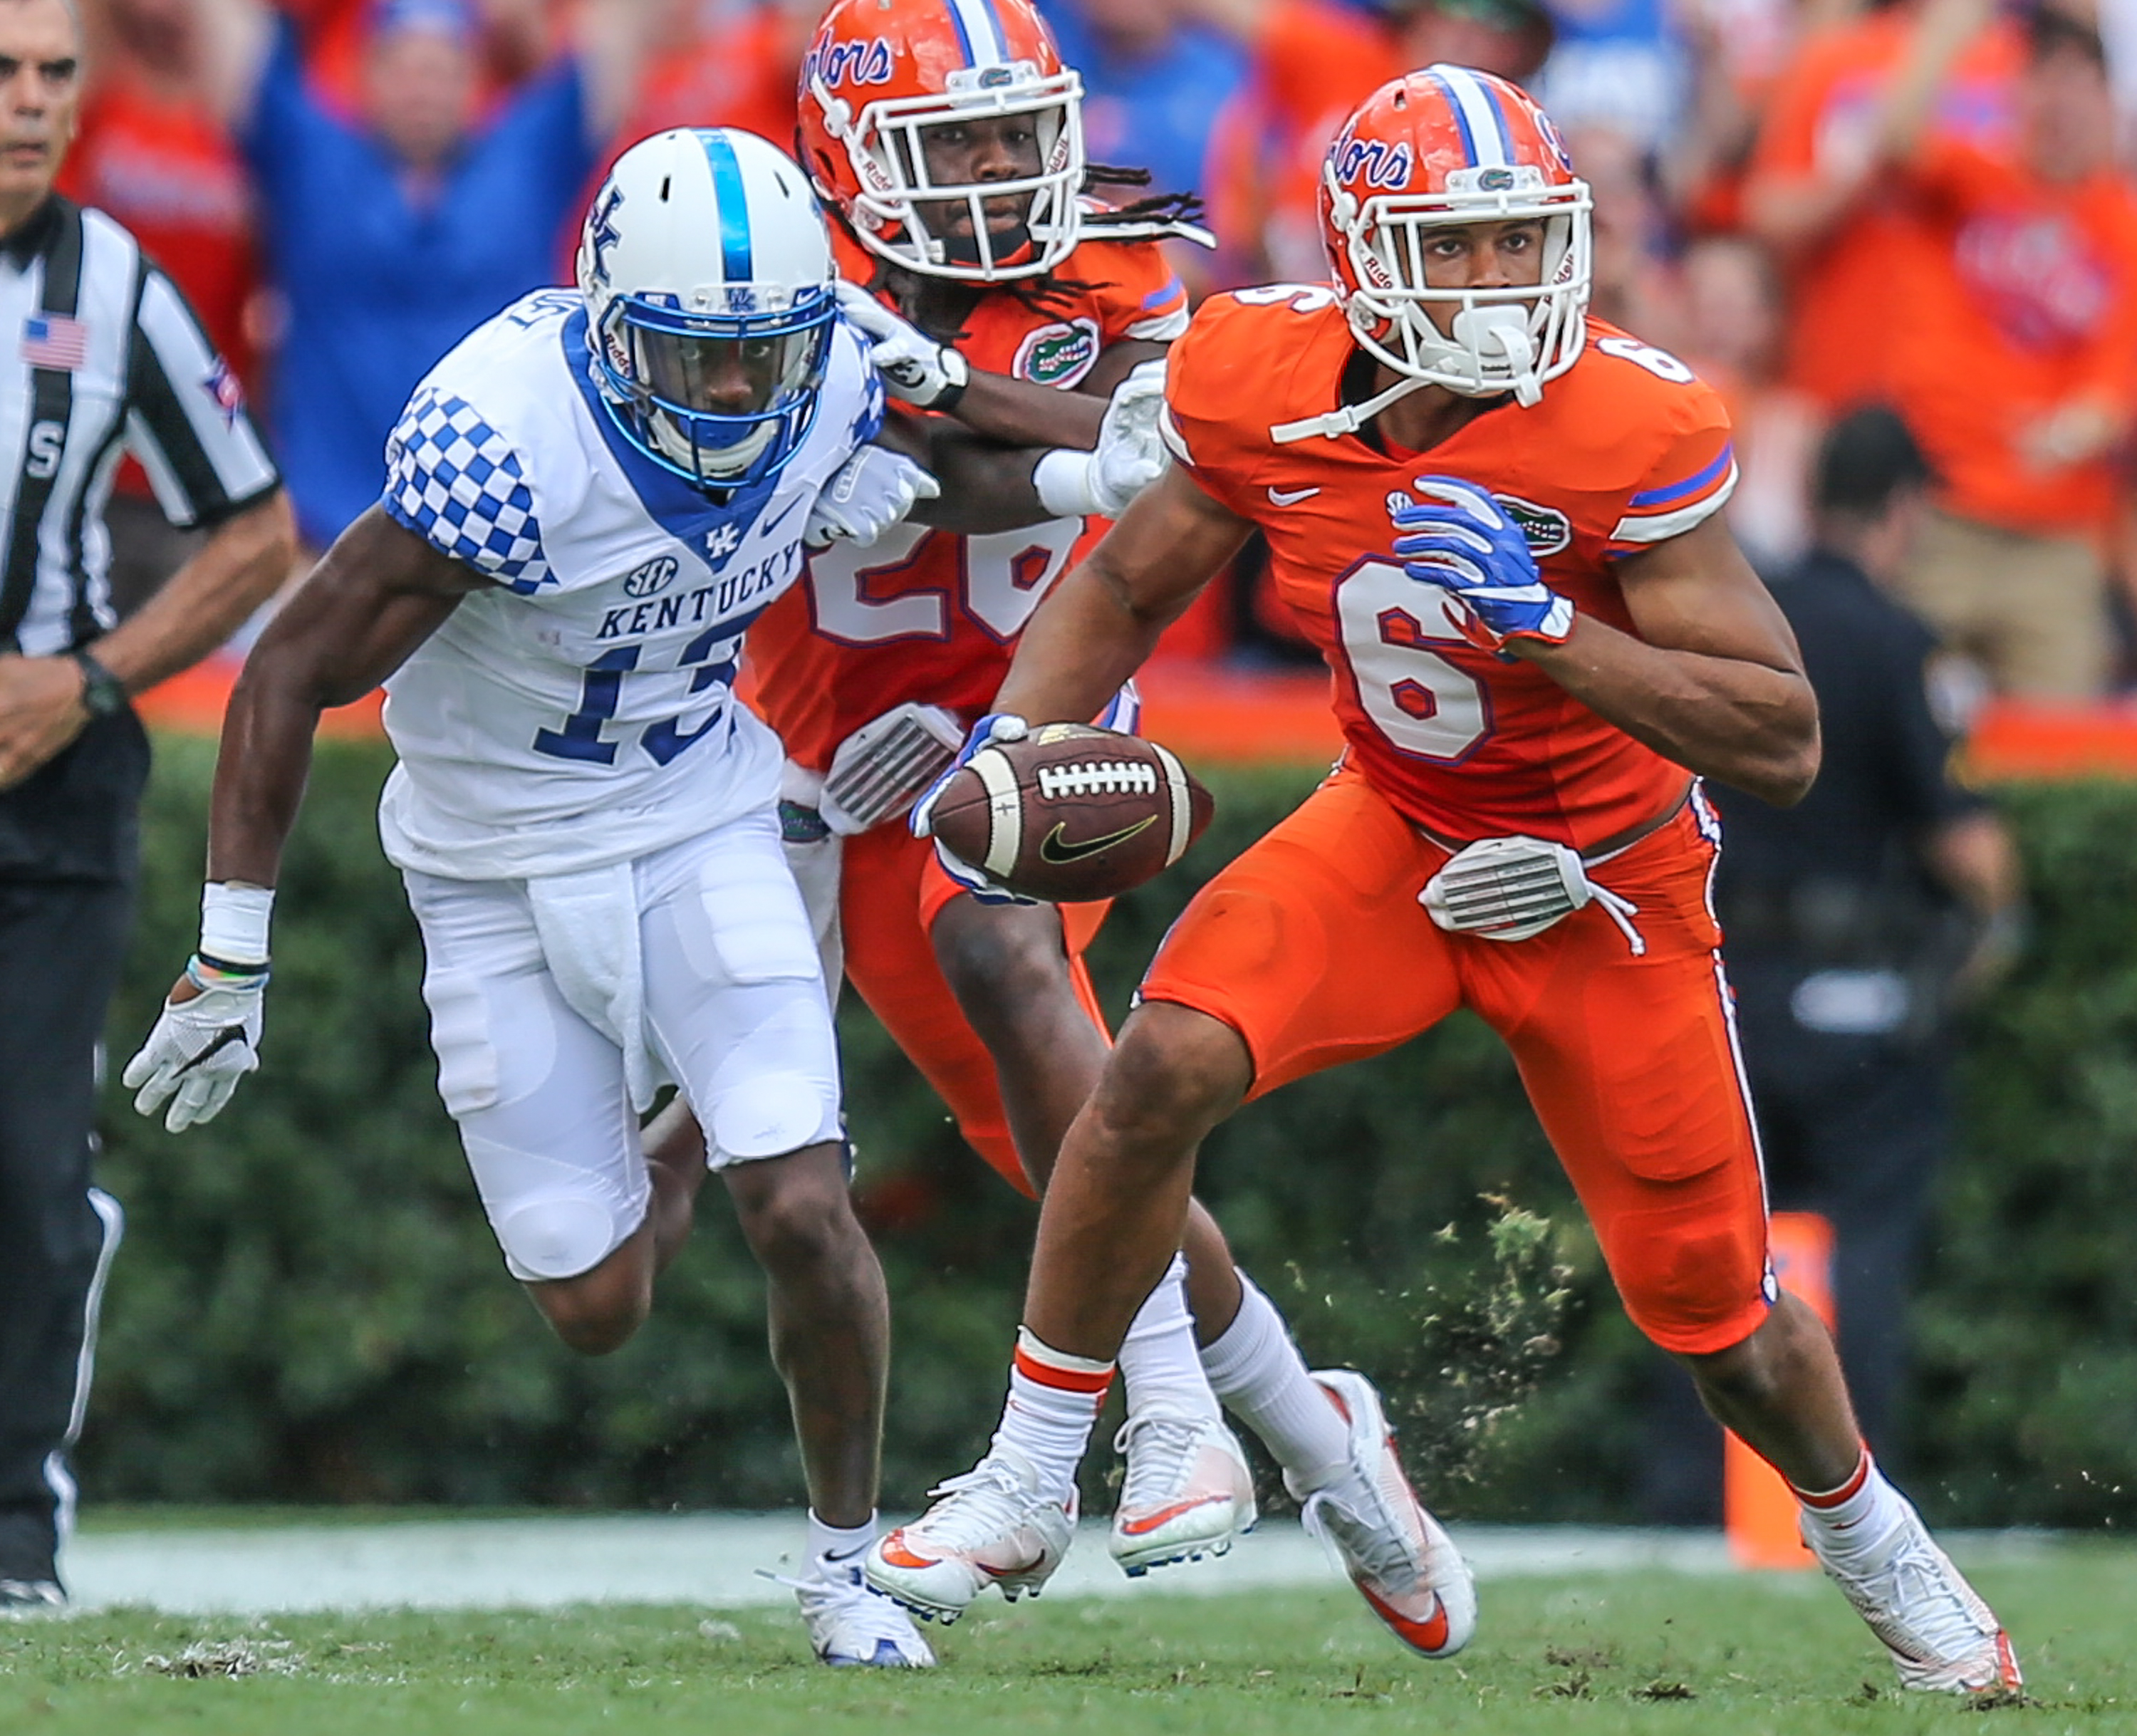 Florida defensive back Quincy Wilson (6) runs the ball after intercepting a pass to Kentucky wide receiver Jeff Badet (13), left, during first half NCAA college football action in Gainesville, Fla., Saturday, Sept. 10, 2016. (Gary McCullough/The Florida T